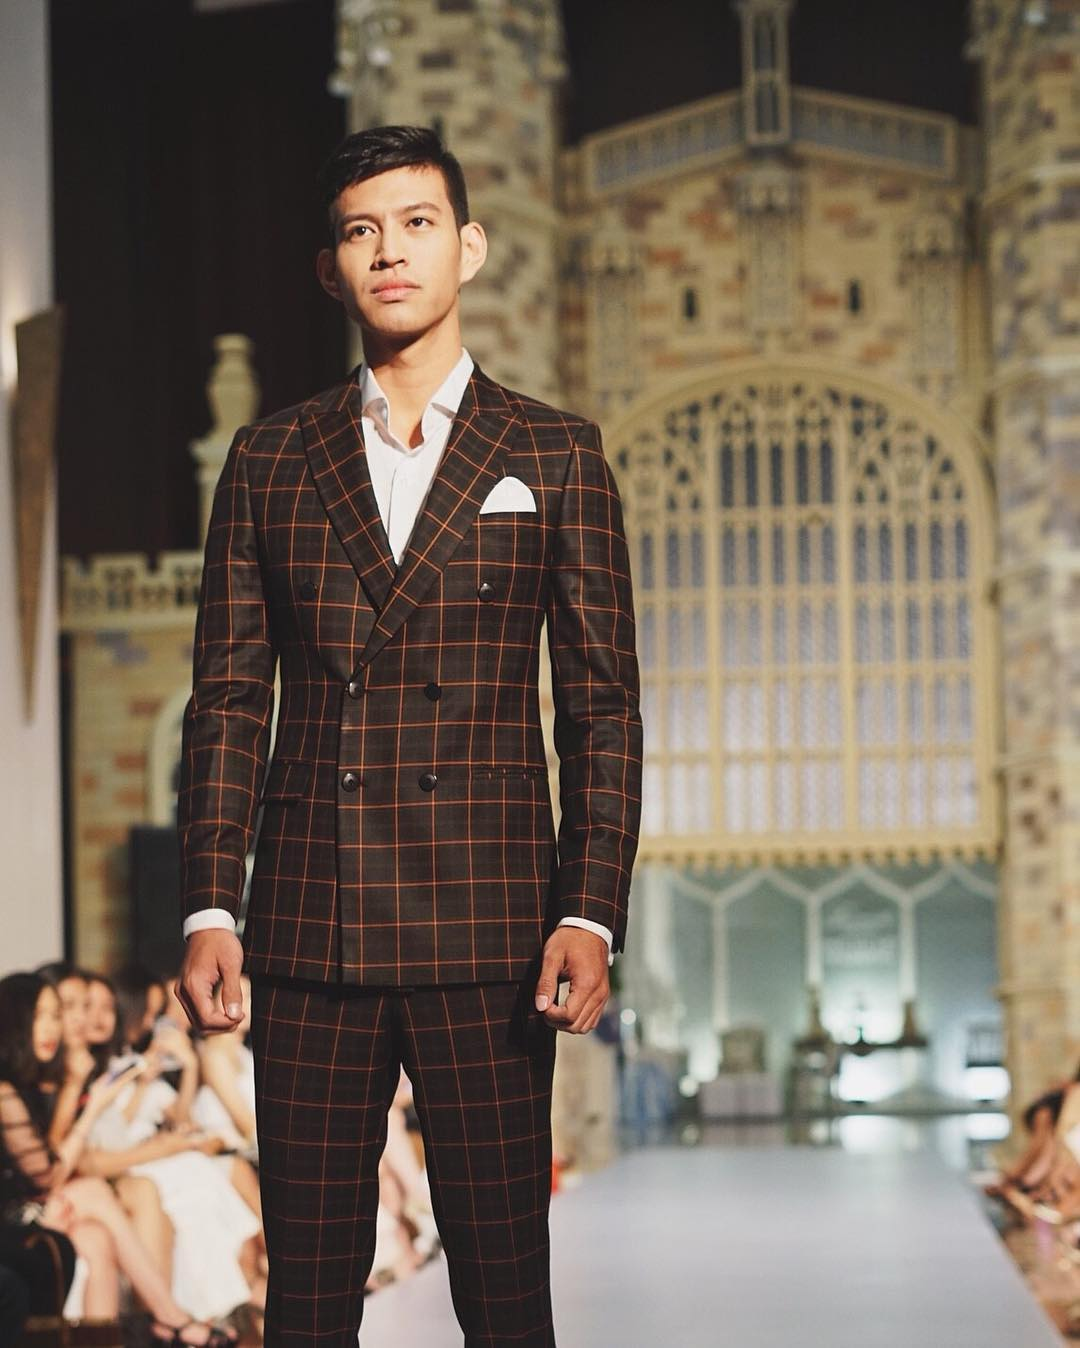 mens tailors in jakarta - wong hang tailor suit